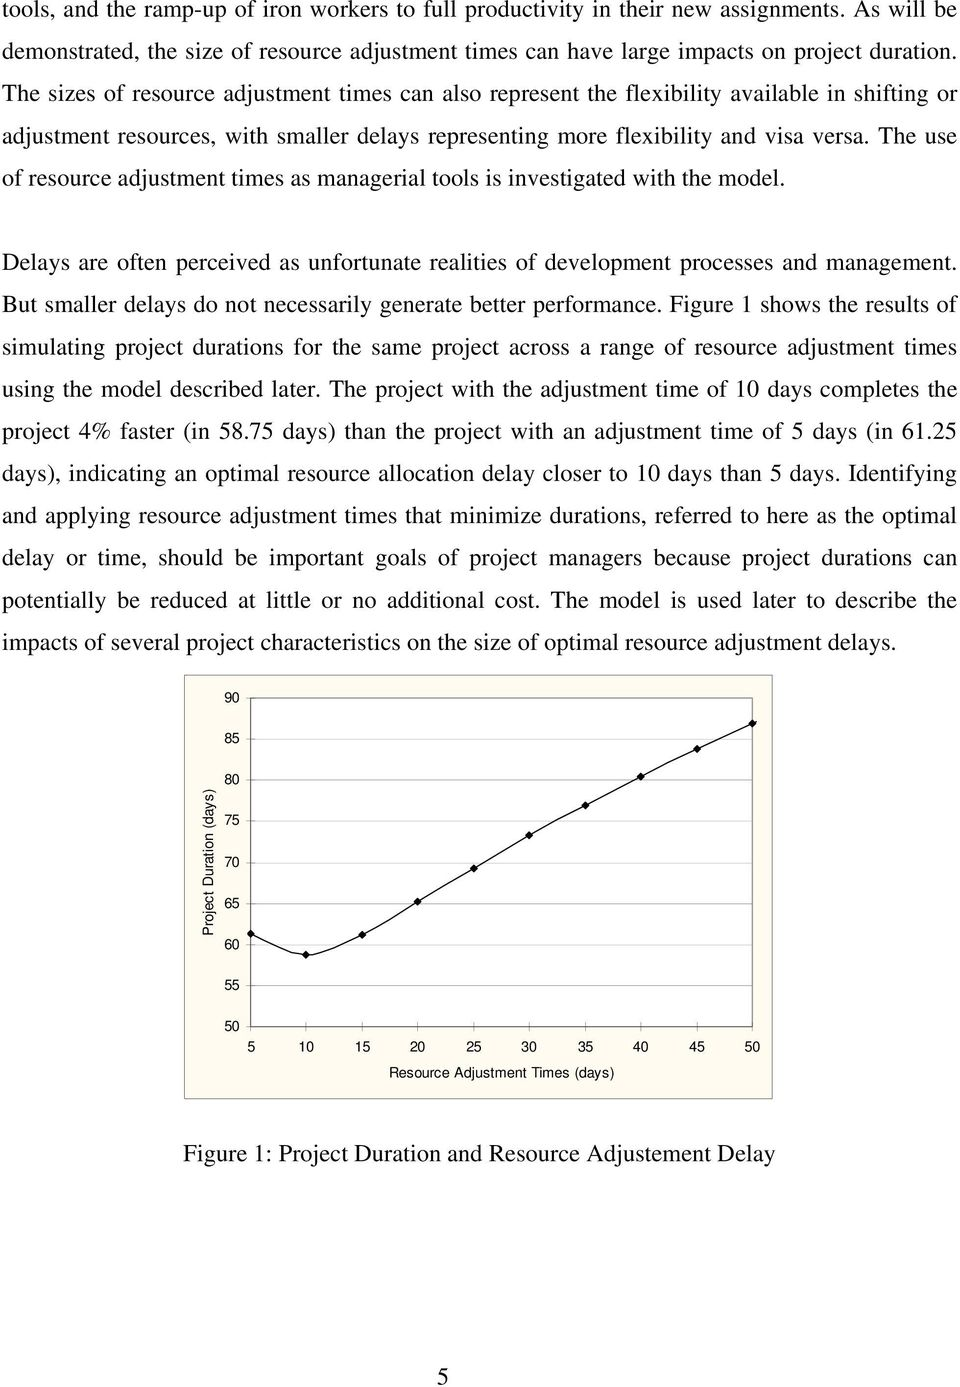 The use of resource adjustment times as managerial tools is investigated with the model. Delays are often perceived as unfortunate realities of development processes and management.